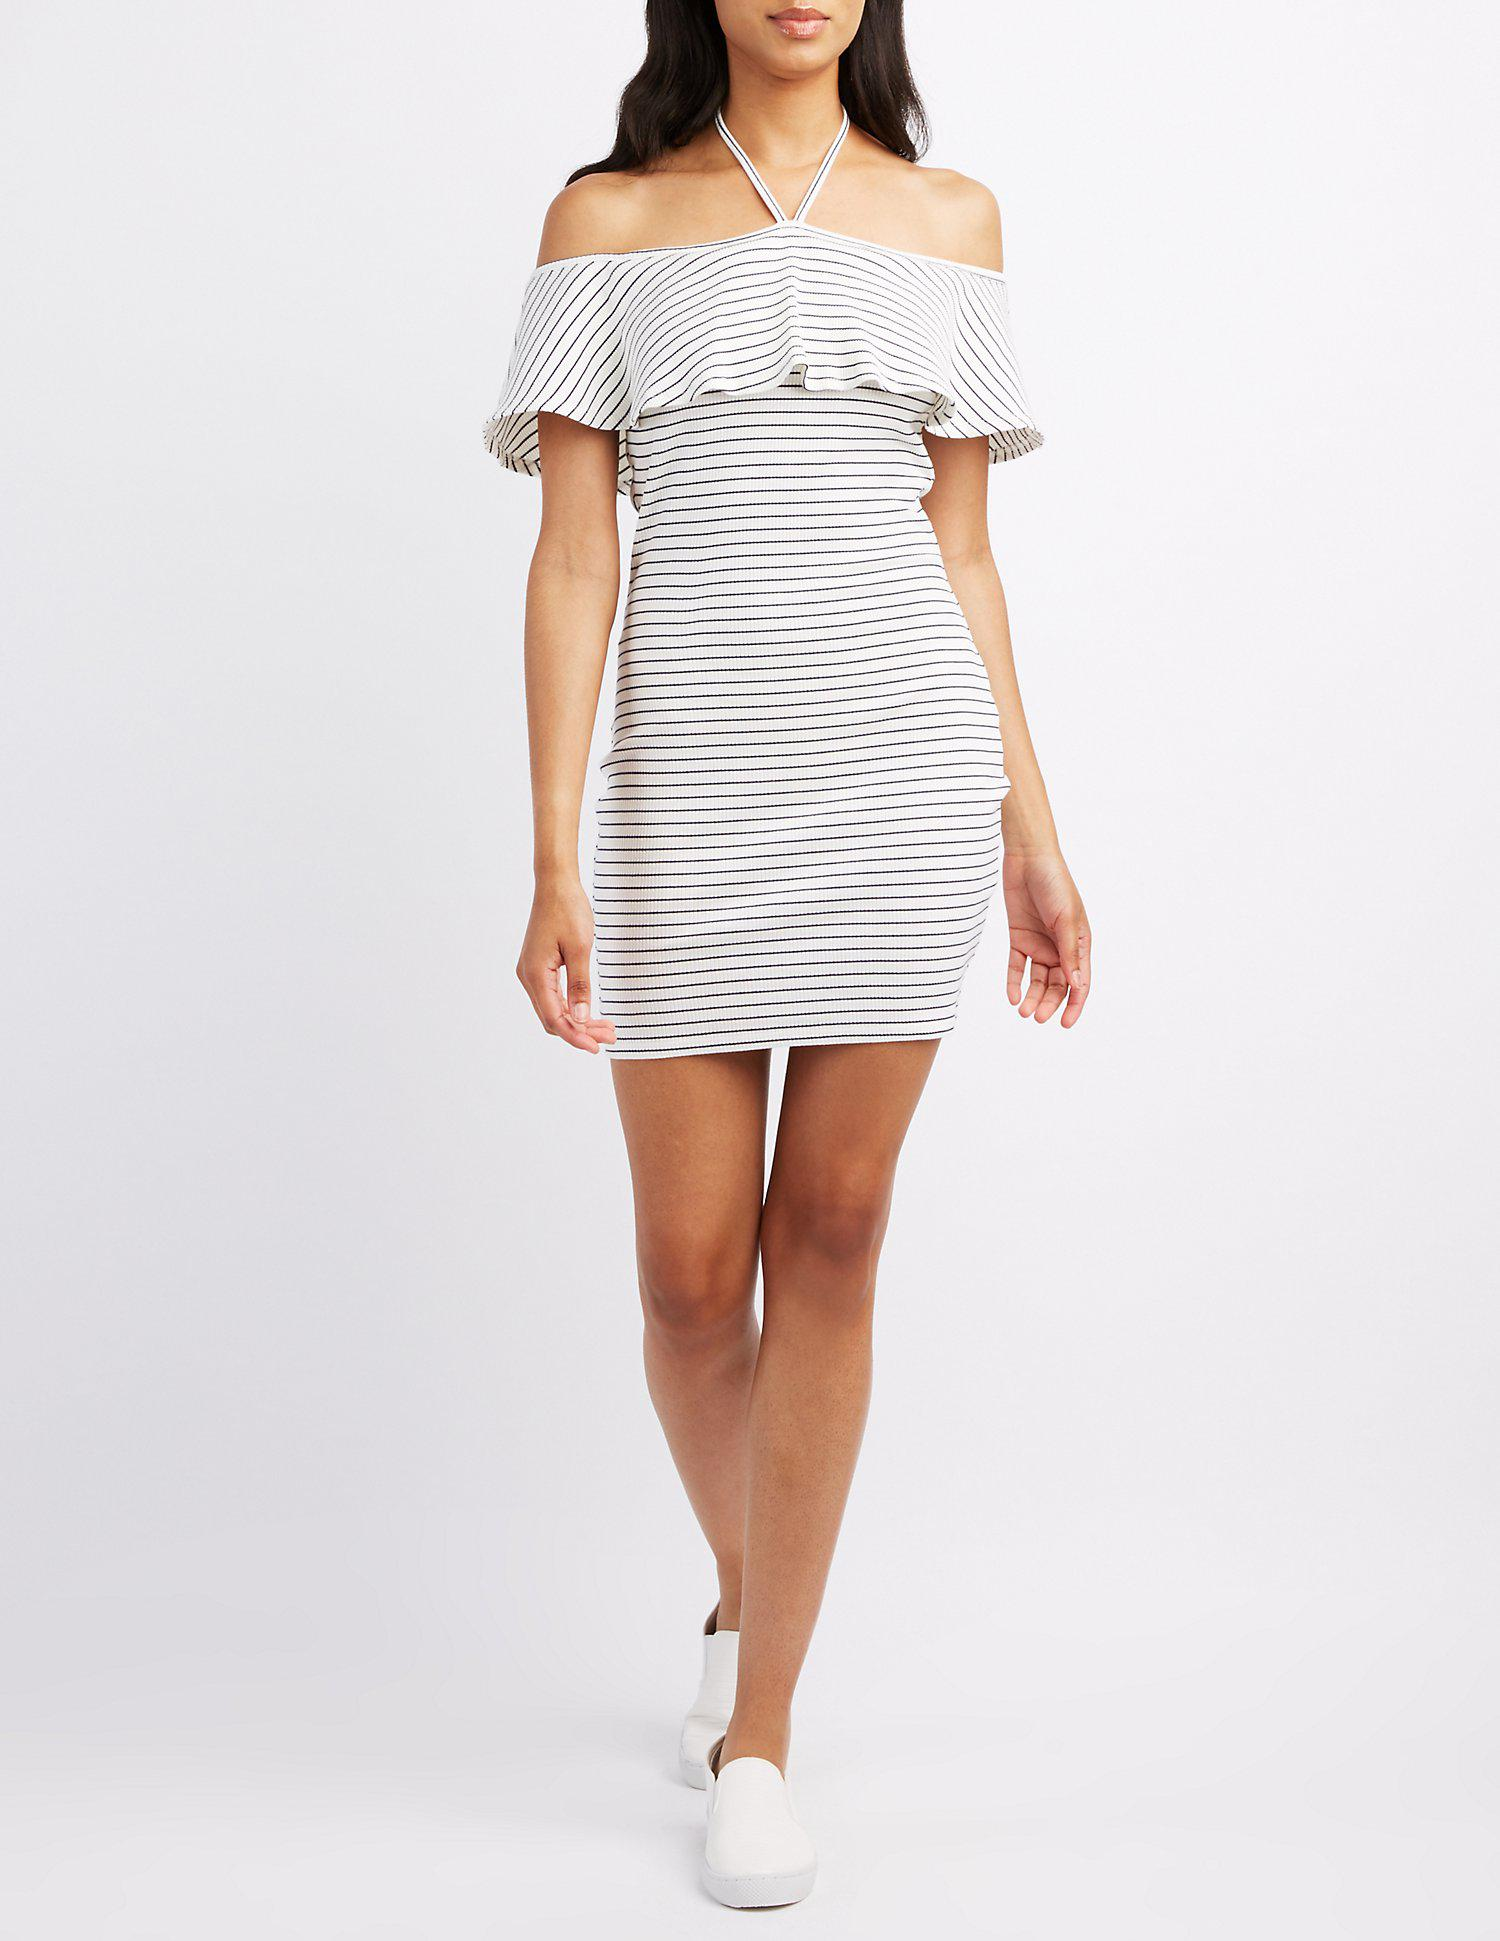 c8844228cb5 Lyst - Charlotte Russe Striped Halter Off-the-shoulder Bodycon Dress